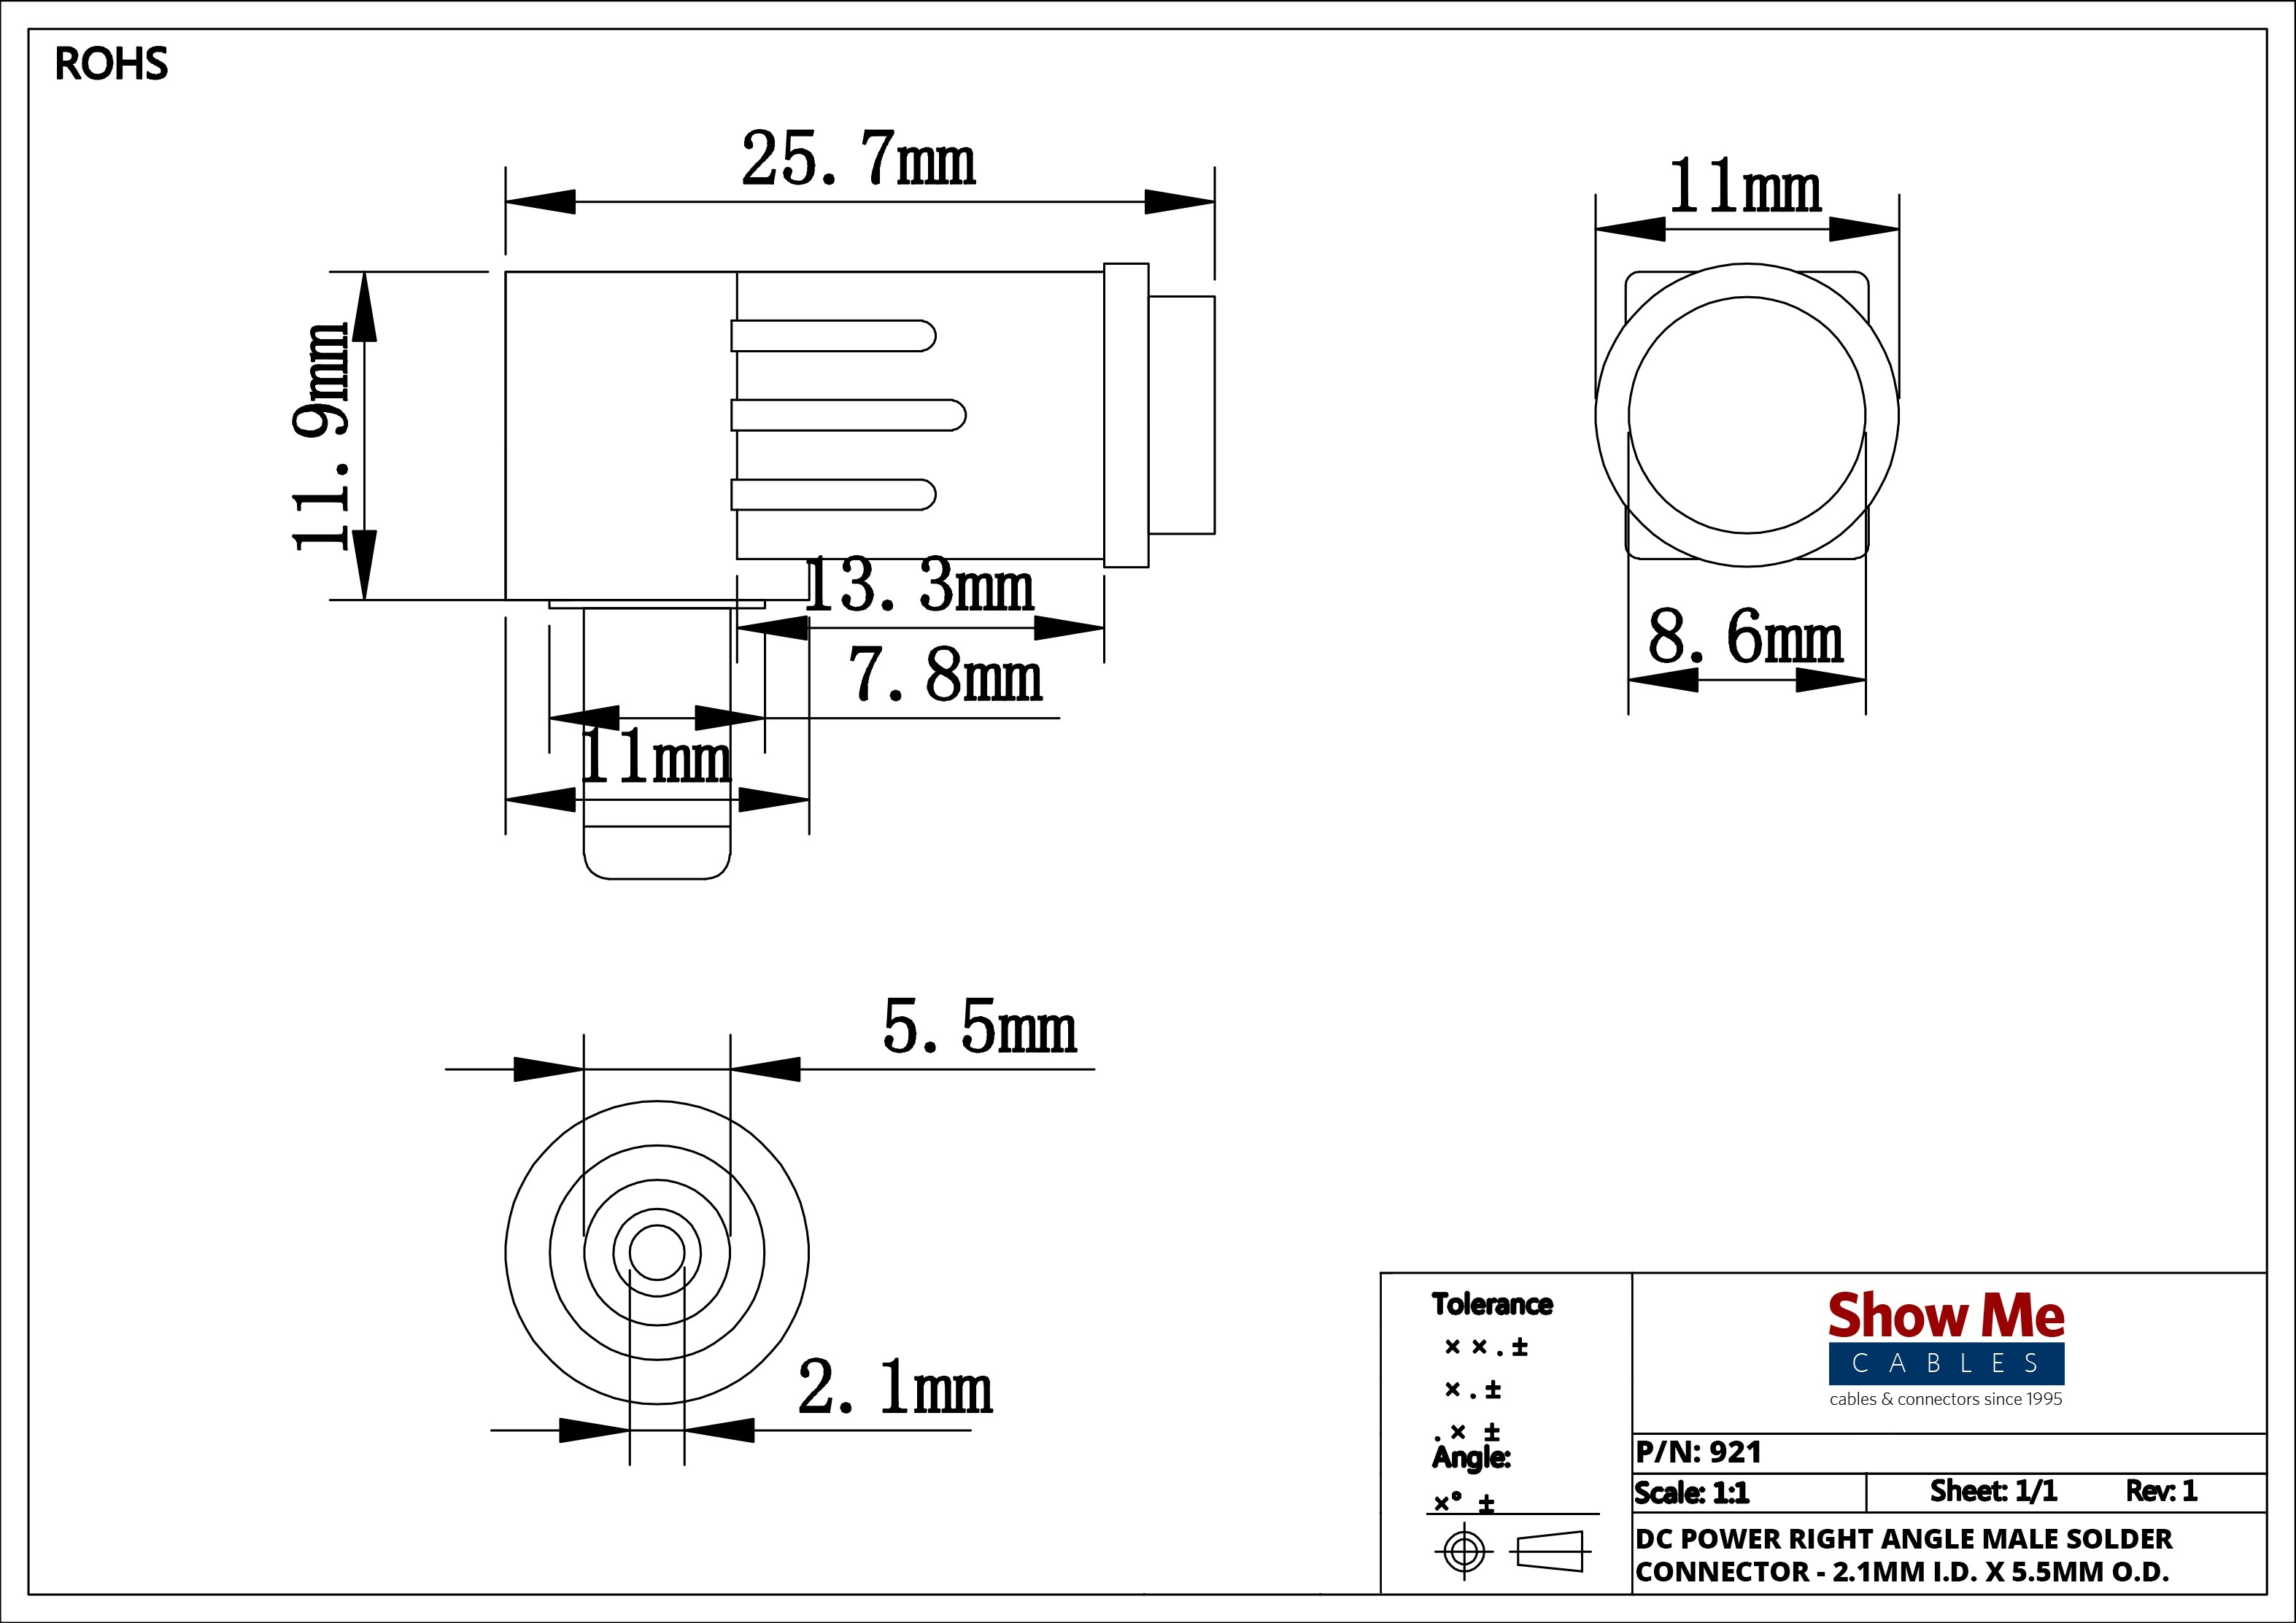 whelen siren 295slsa6 wiring diagram free wiring diagram 4 Ohm Guitar Speaker Wiring Diagram whelen siren 295slsa6 wiring diagram home speaker wiring diagram gallery contemporary easy simple routing whelen